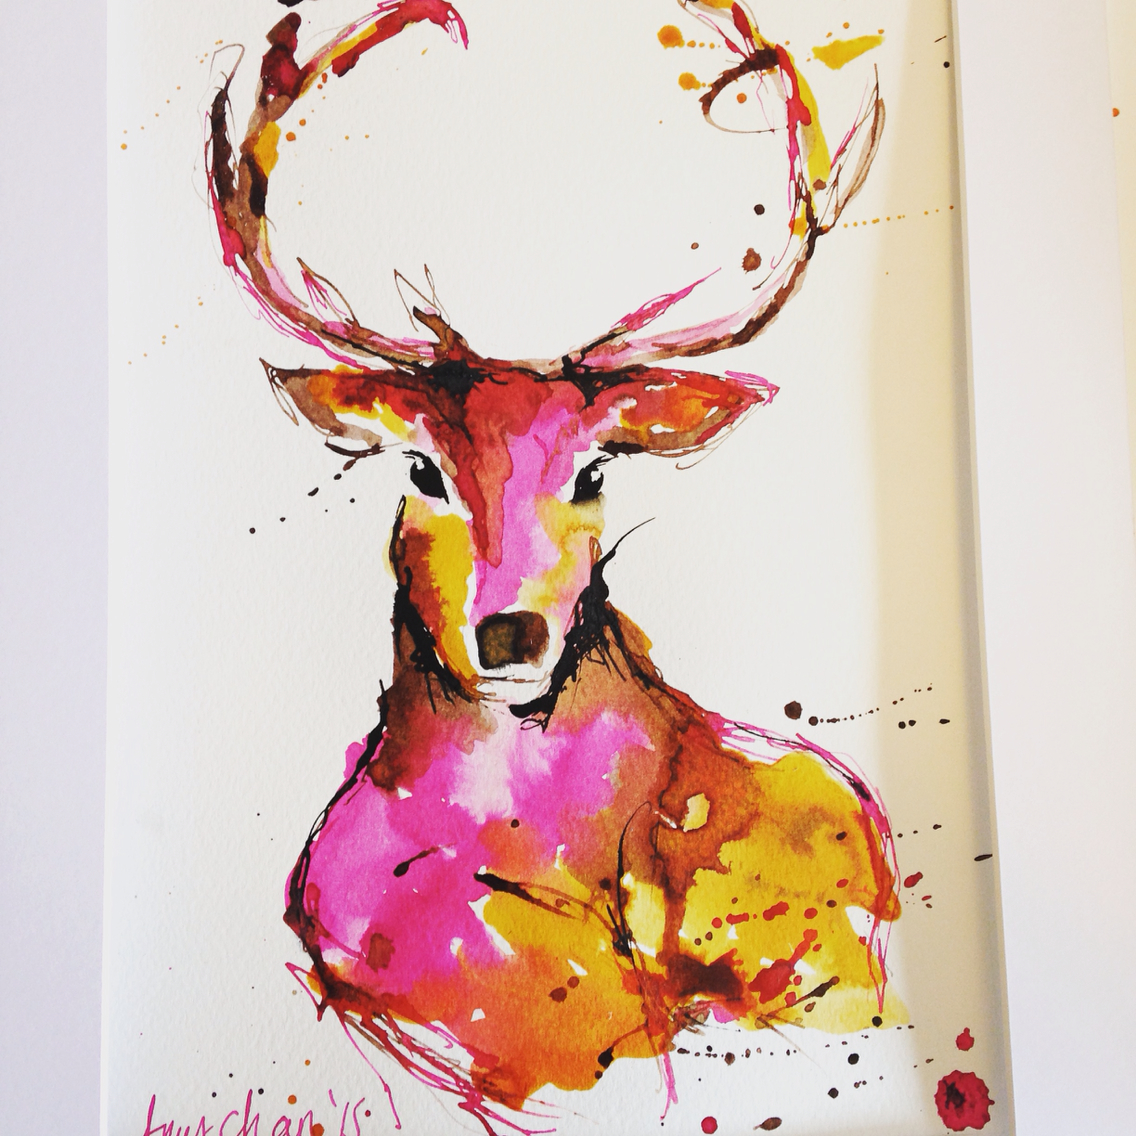 Drawn stag abstract Painted Abstract and Stag pen